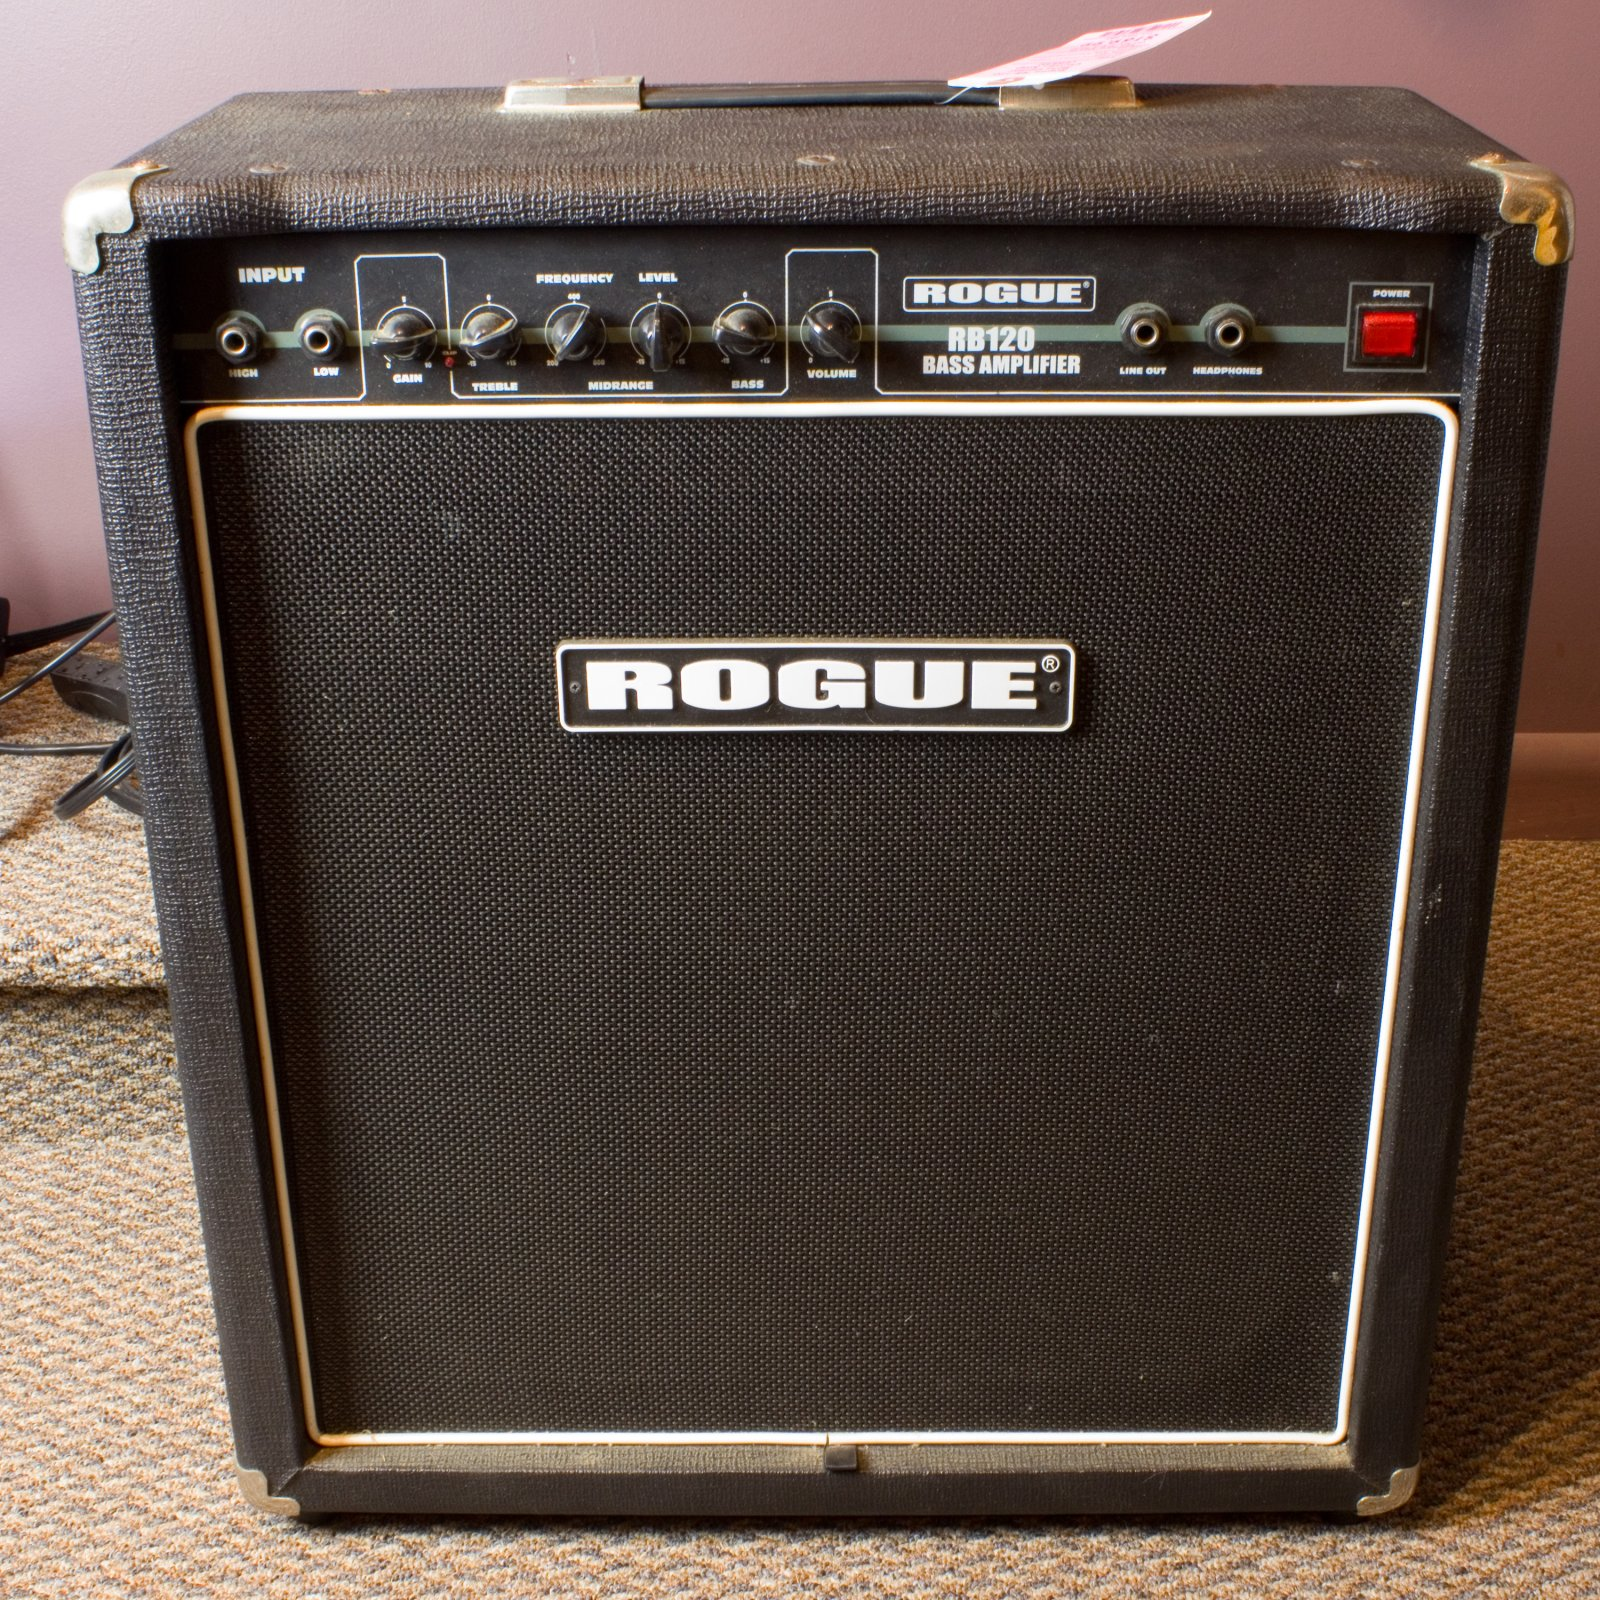 Rogue RB-120 Bass Guitar Combo Amp (USED)